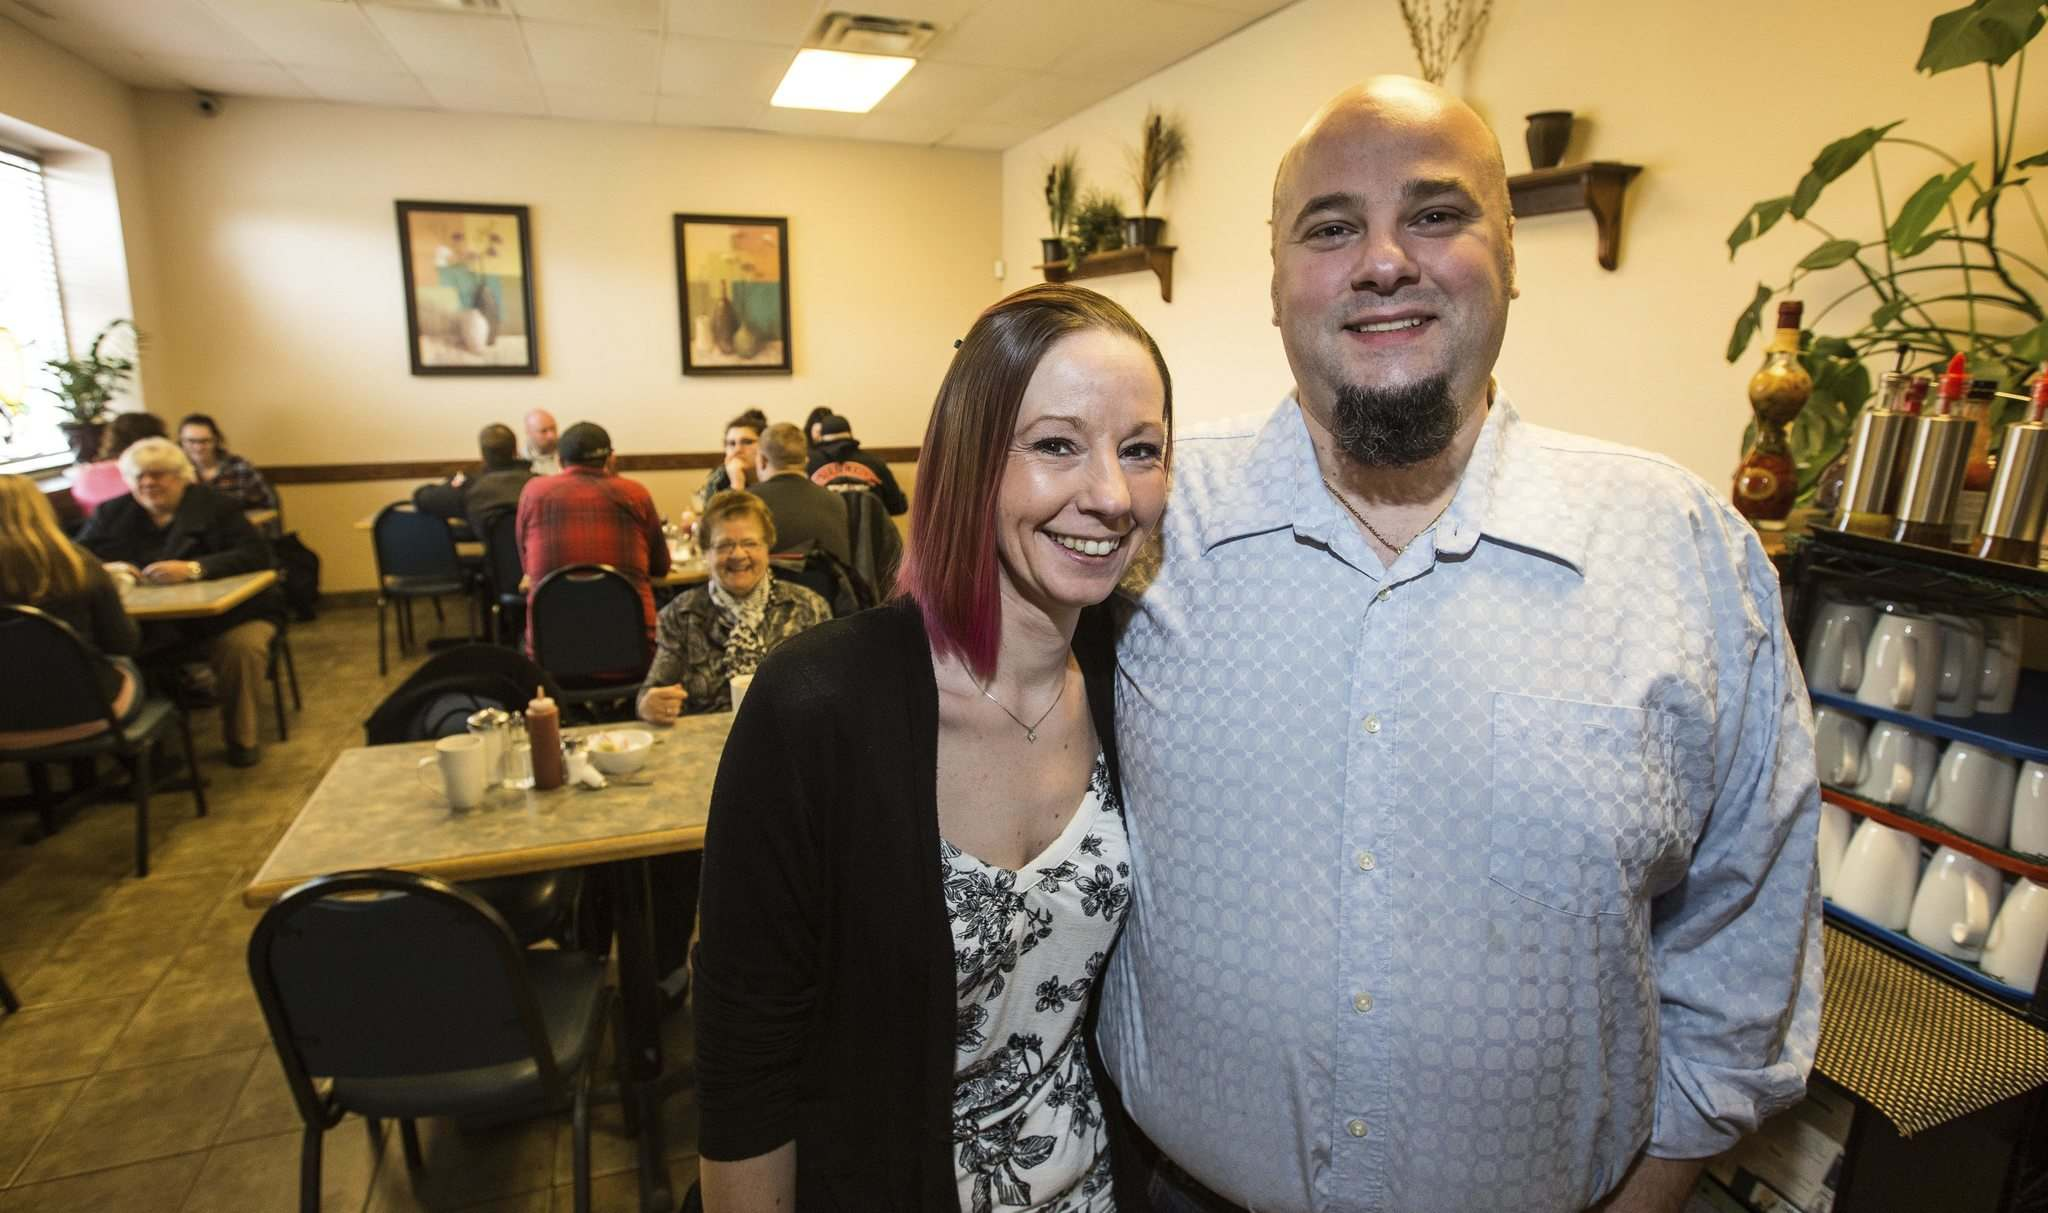 PHOTOS BY MIKE DEAL / WINNIPEG FREE PRESS</p><p>Samantha Vlahos and her husband, Pete Vlahos, admit their restaurant is nothing fancy, but that doesn't stop many from coming in on a regular basis to enjoy the homestyle cooking.</p></p>